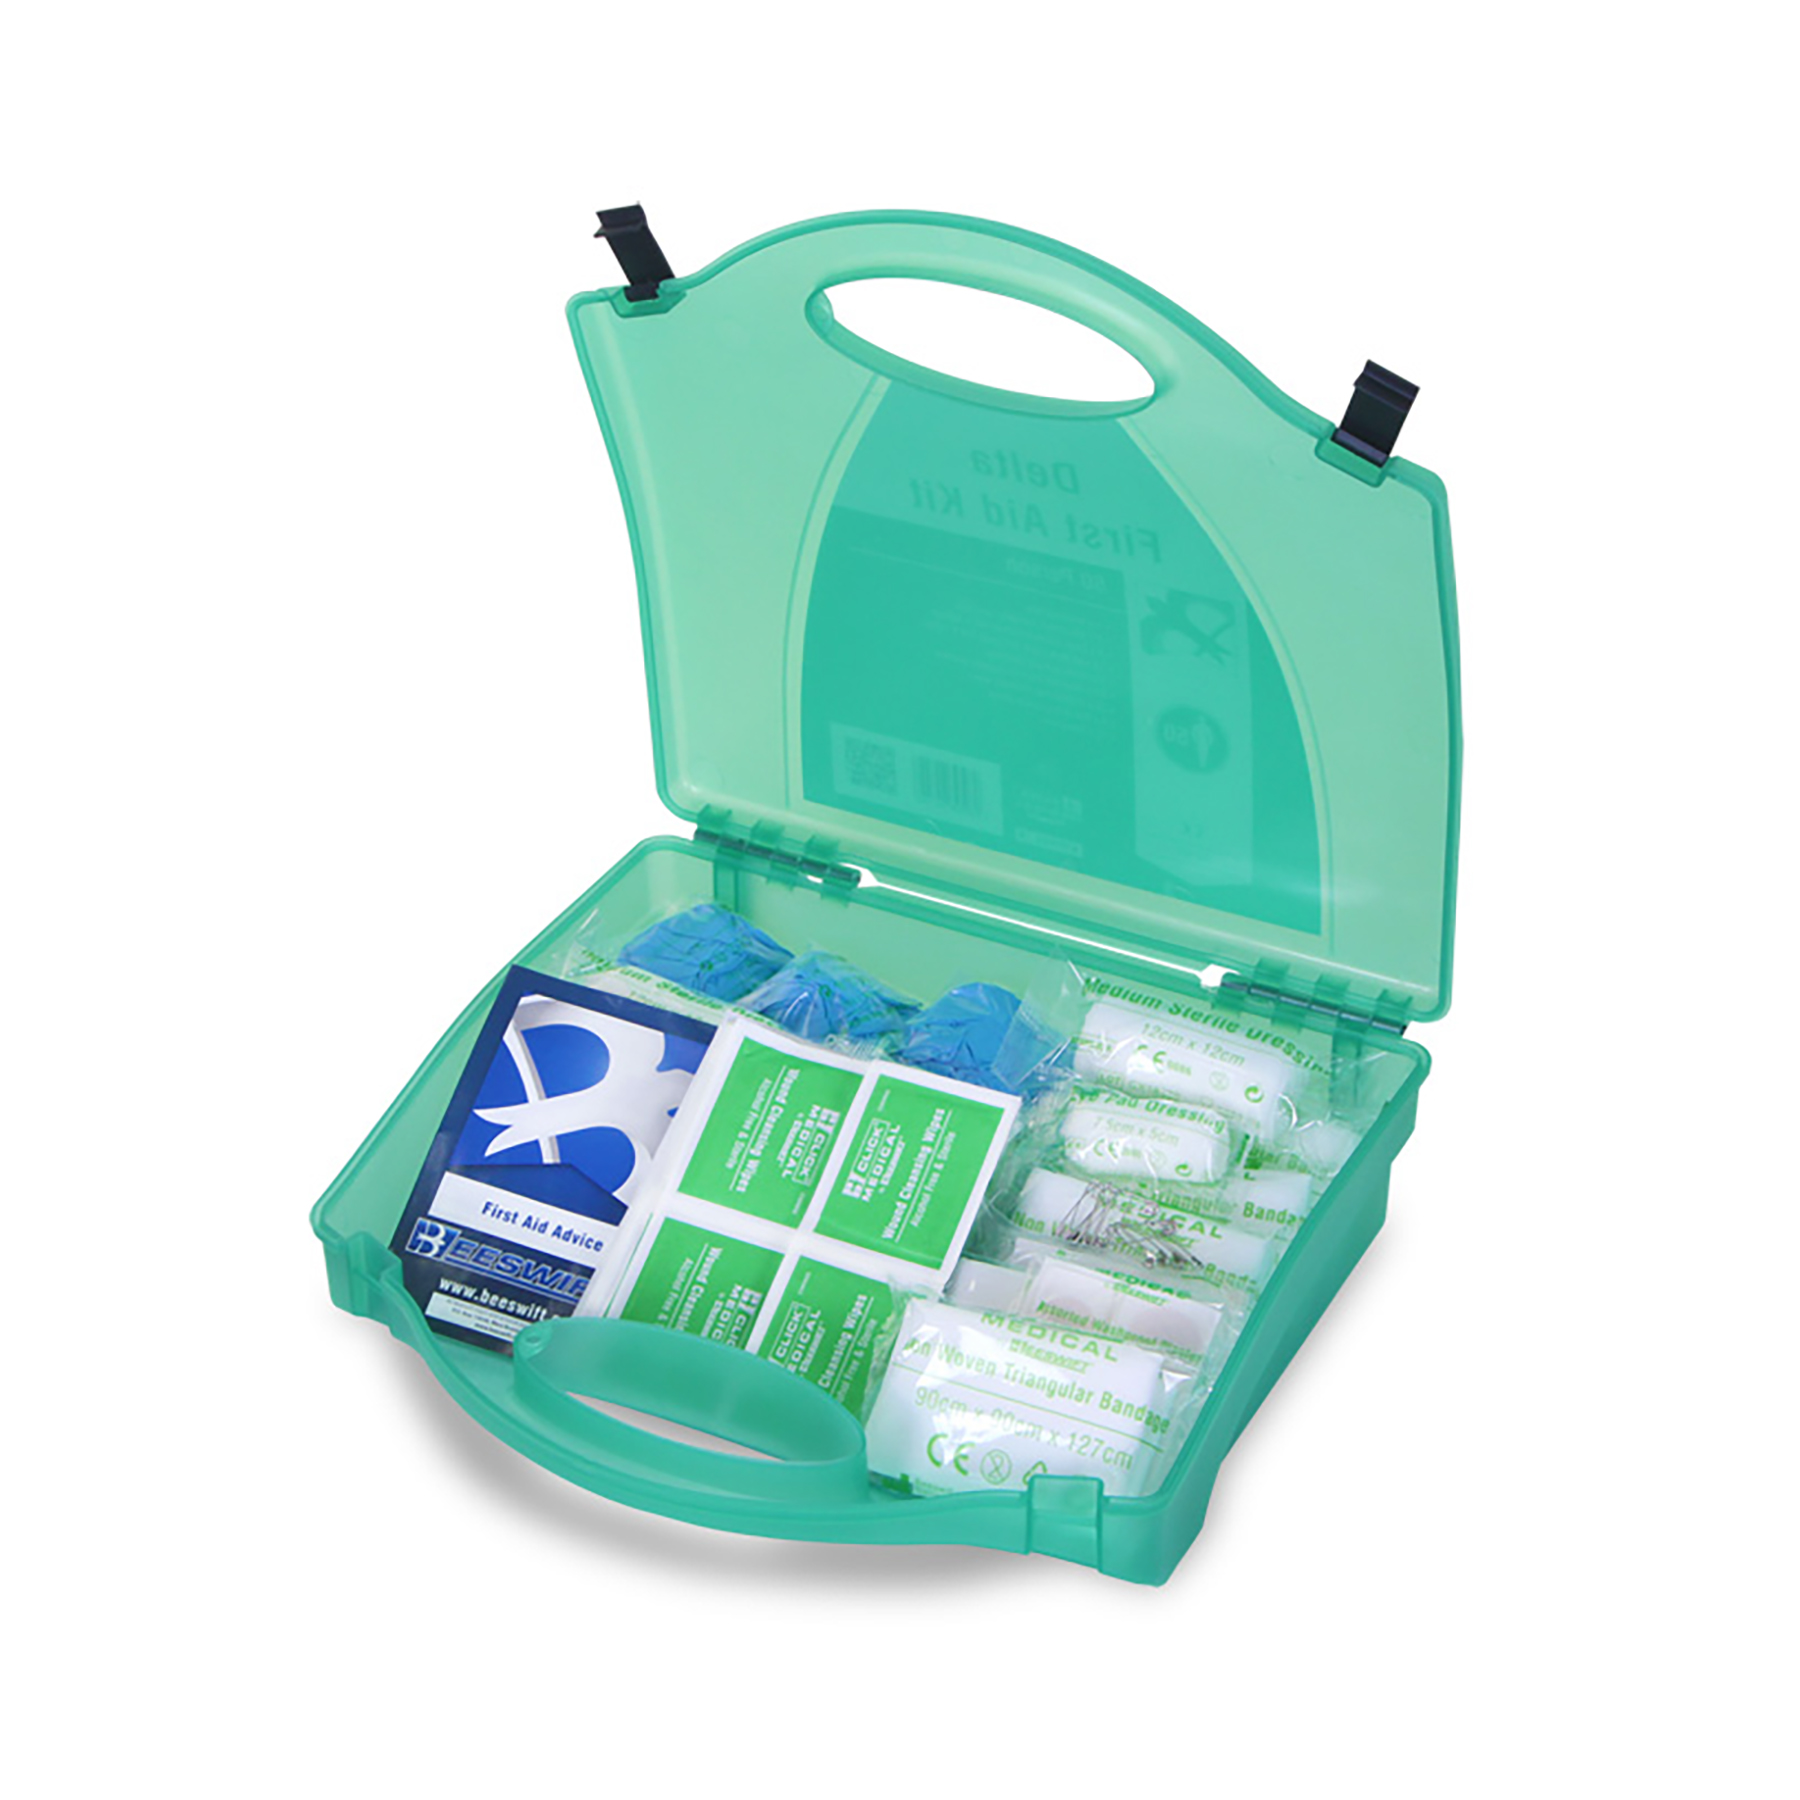 Equipment 5 Star Facilities First Aid Kit HS1 1-20 Person